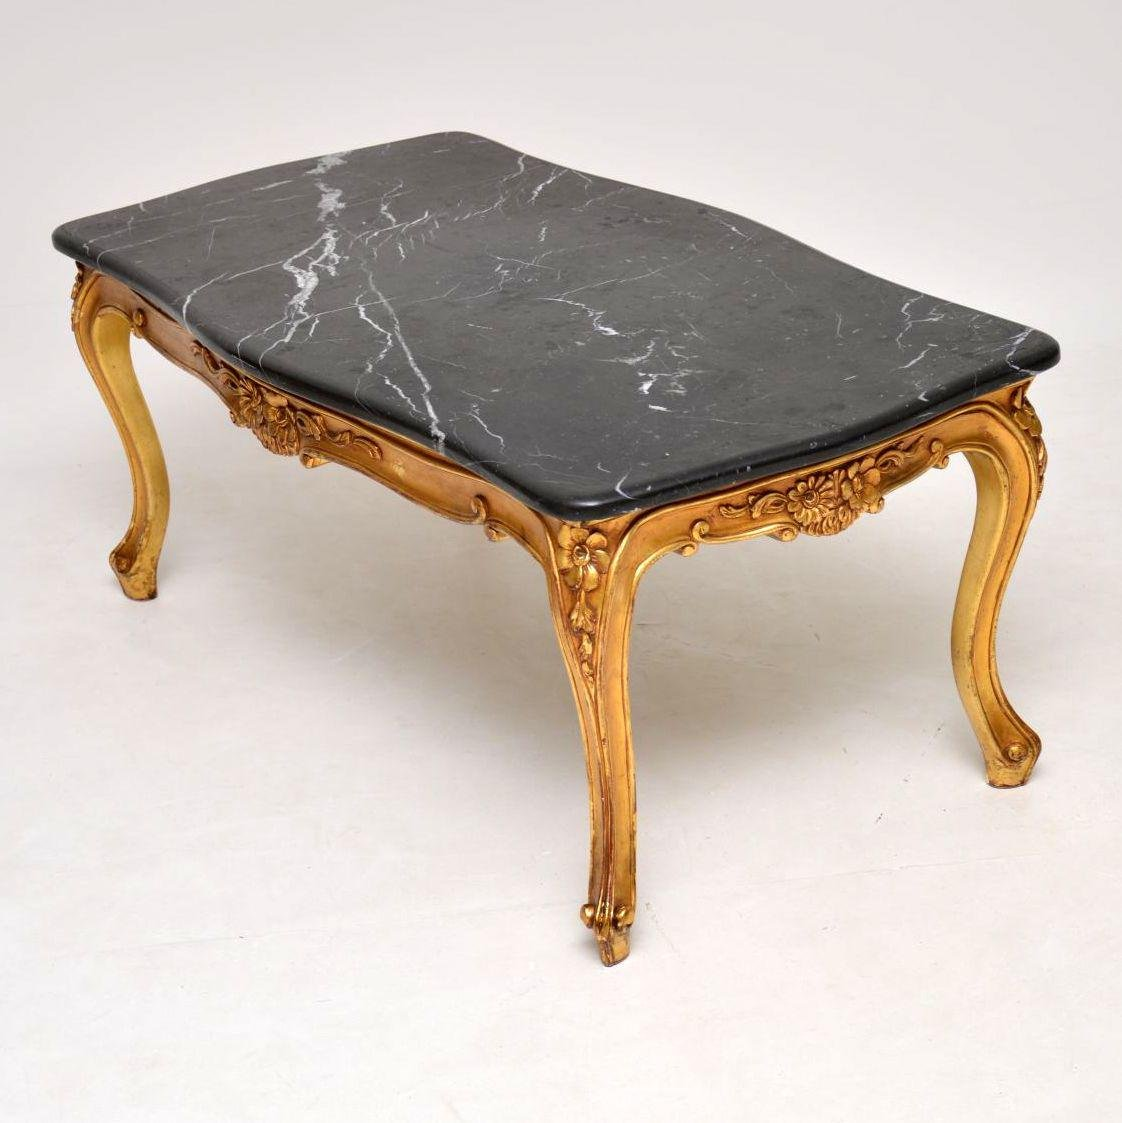 Antique French Marble Top Coffee Table: Vintage French Gilt Wood Marble Top Coffee Table En Vente